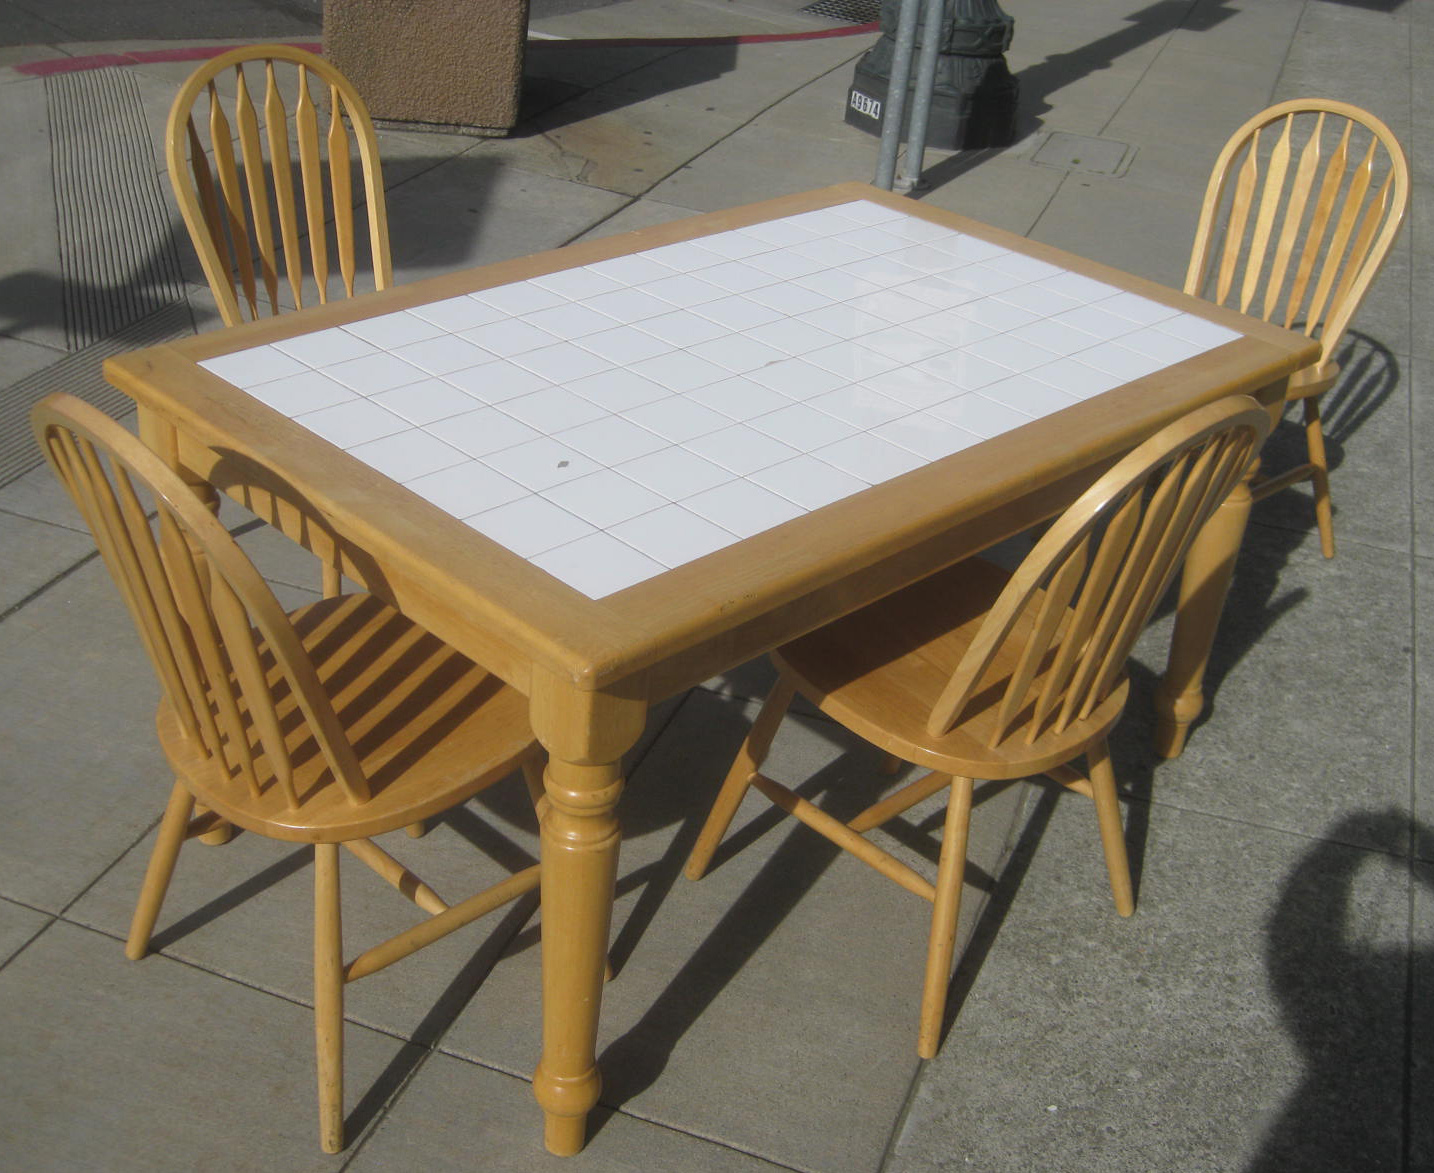 Uhuru Furniture Amp Collectibles Sold Tile Top Table And Four Chairs 90